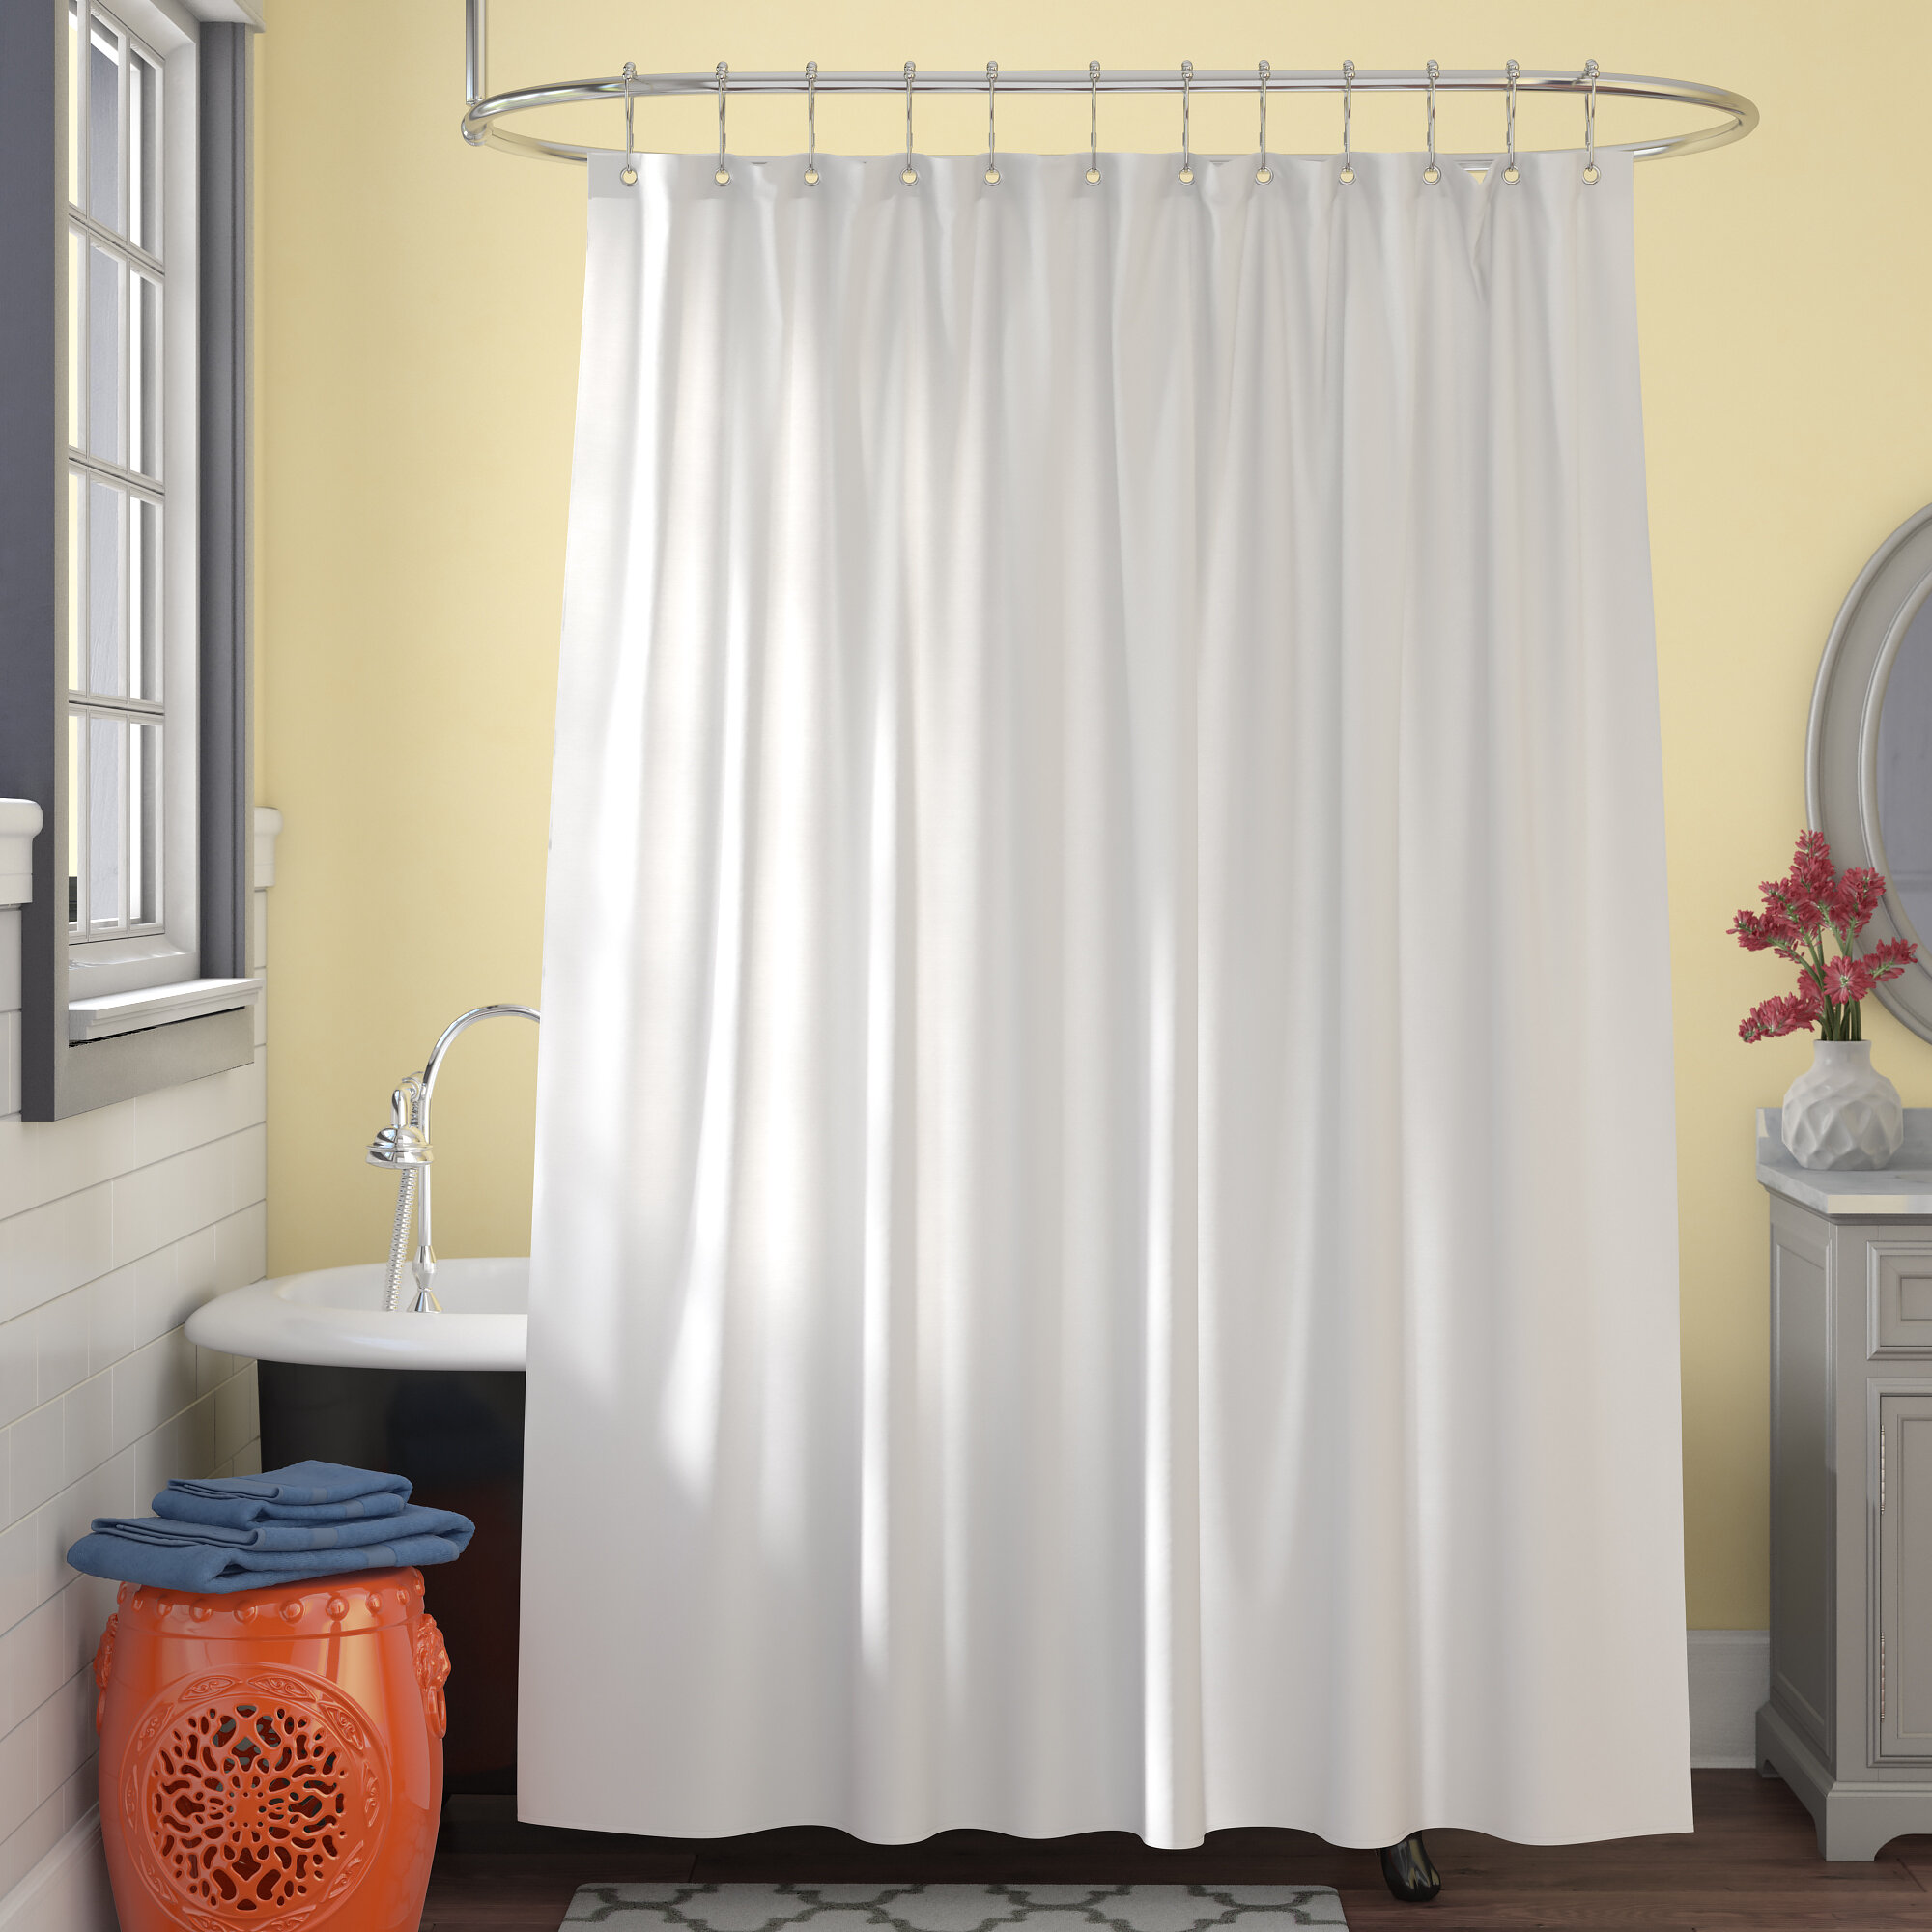 Symple Stuff Microban Microfiber Fabric Single Shower Curtain Liner & Reviews | Wayfair